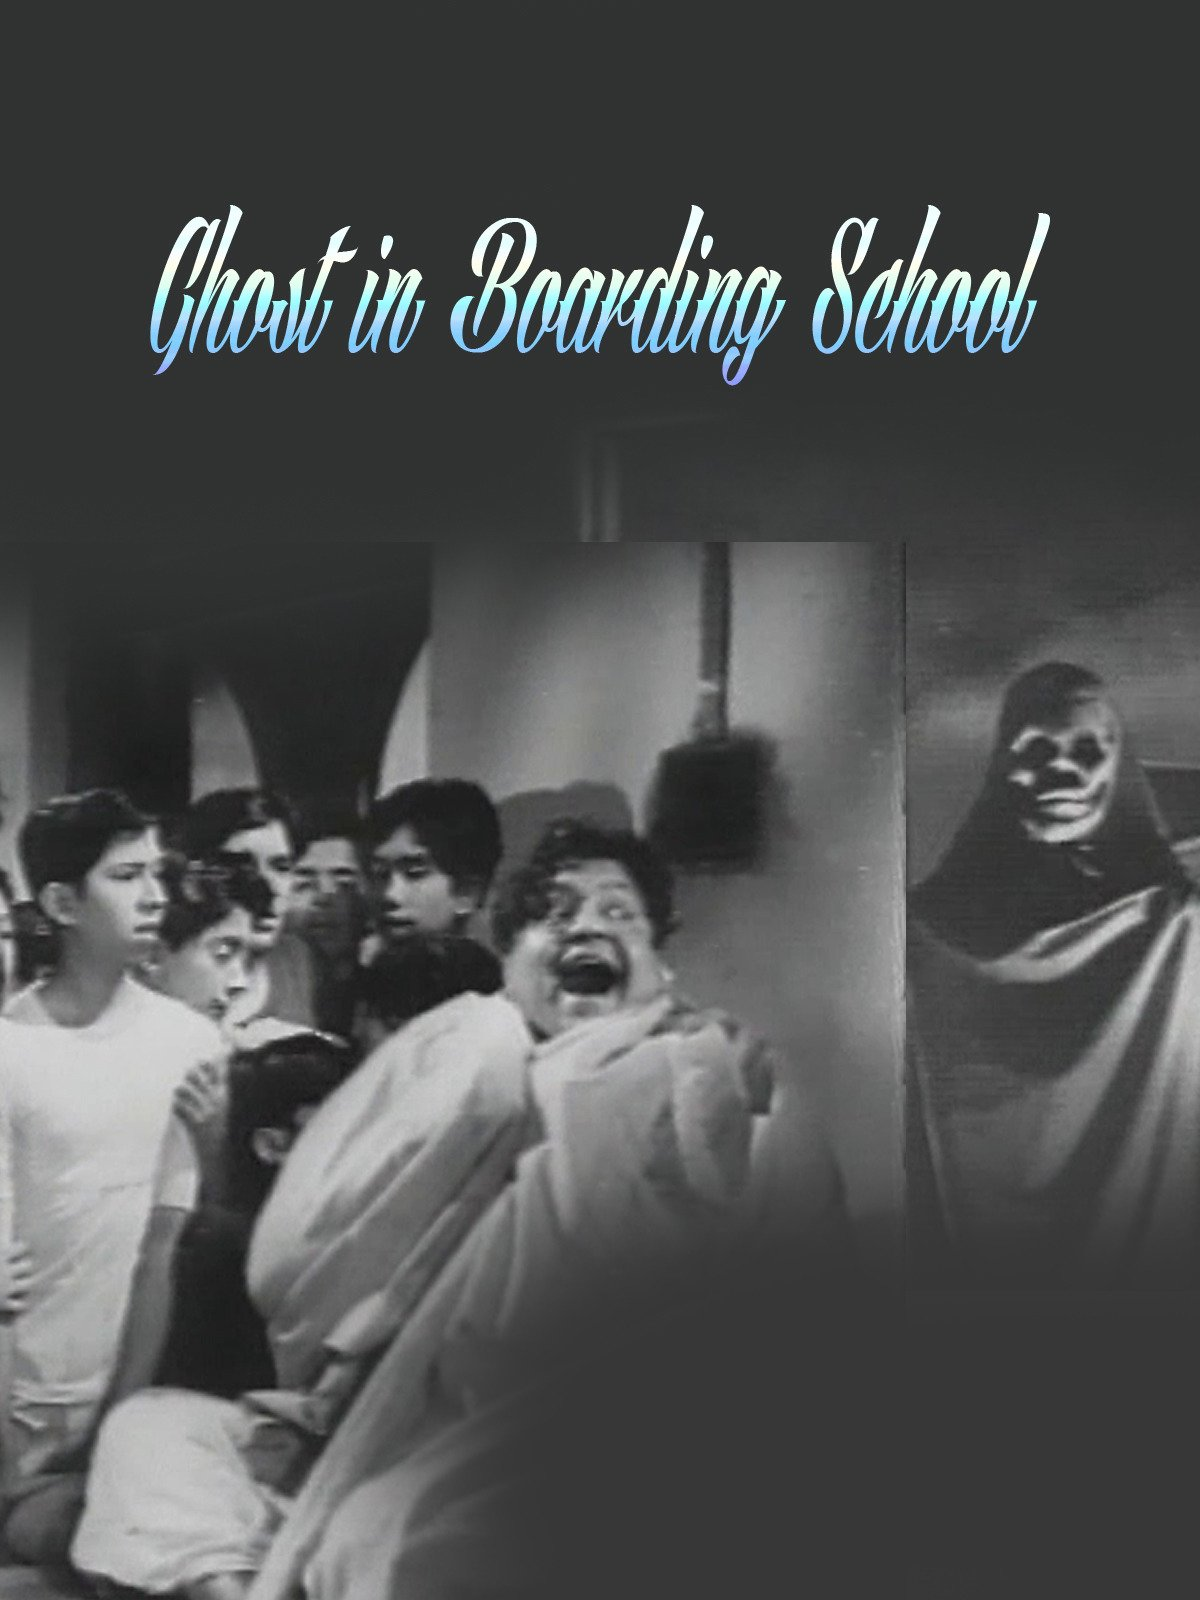 Clip: Ghost in Boarding School